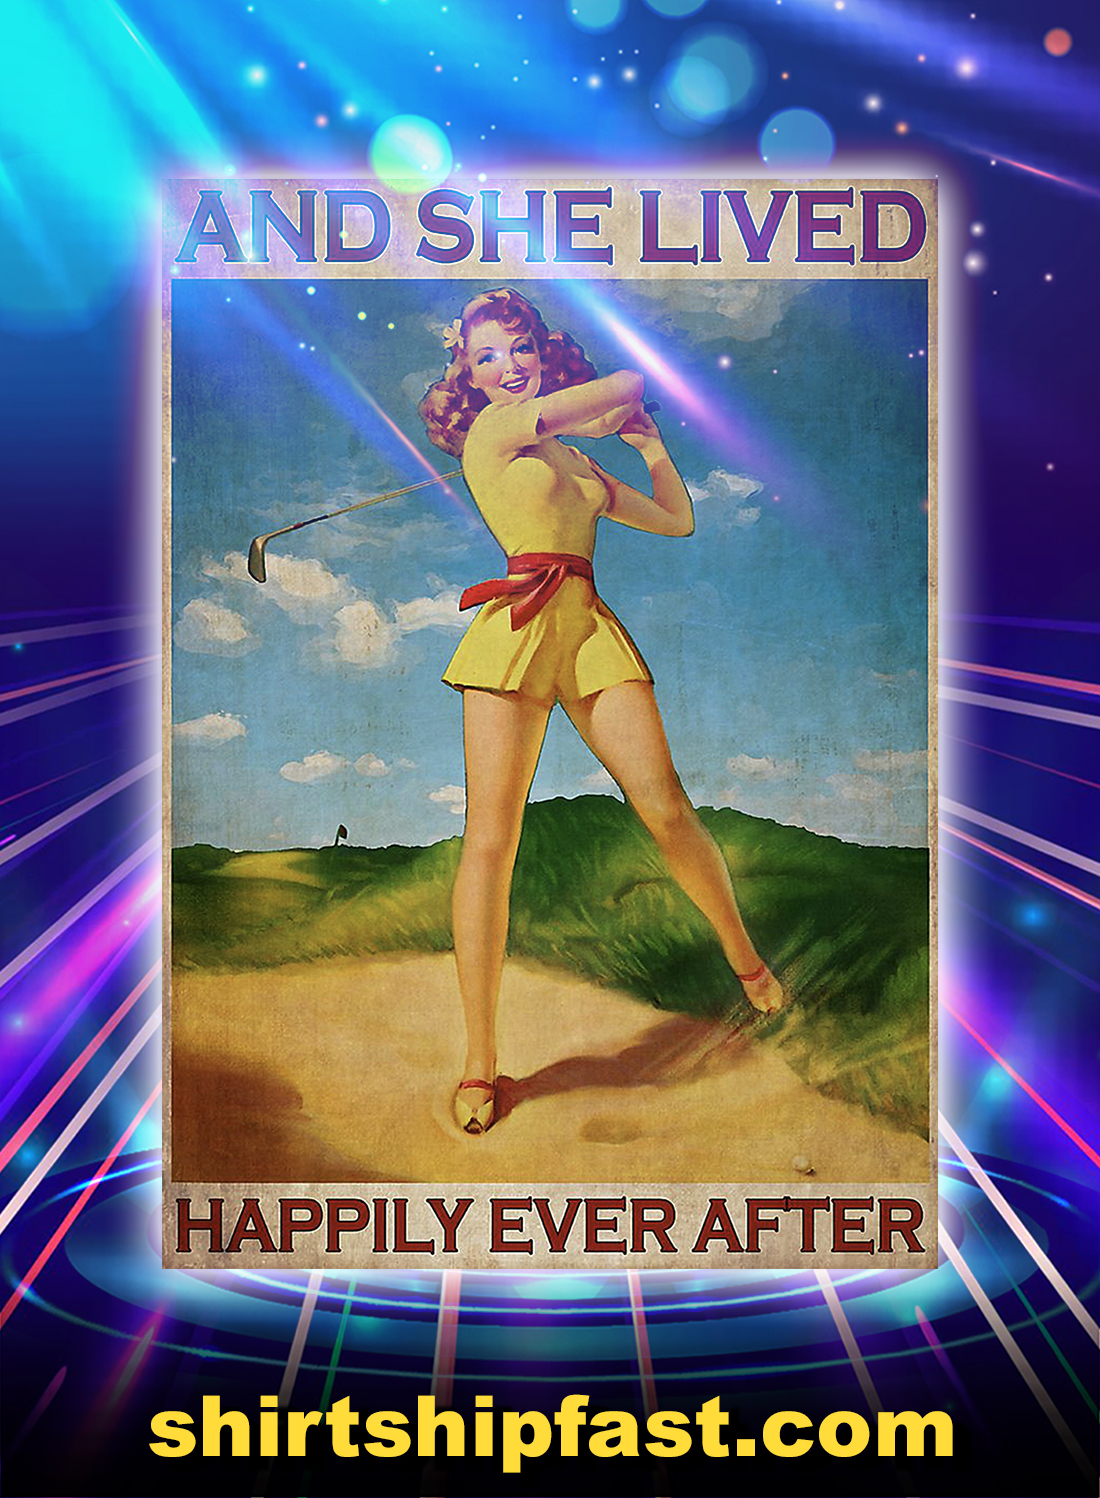 Golf and she lived happily ever after poster - A4